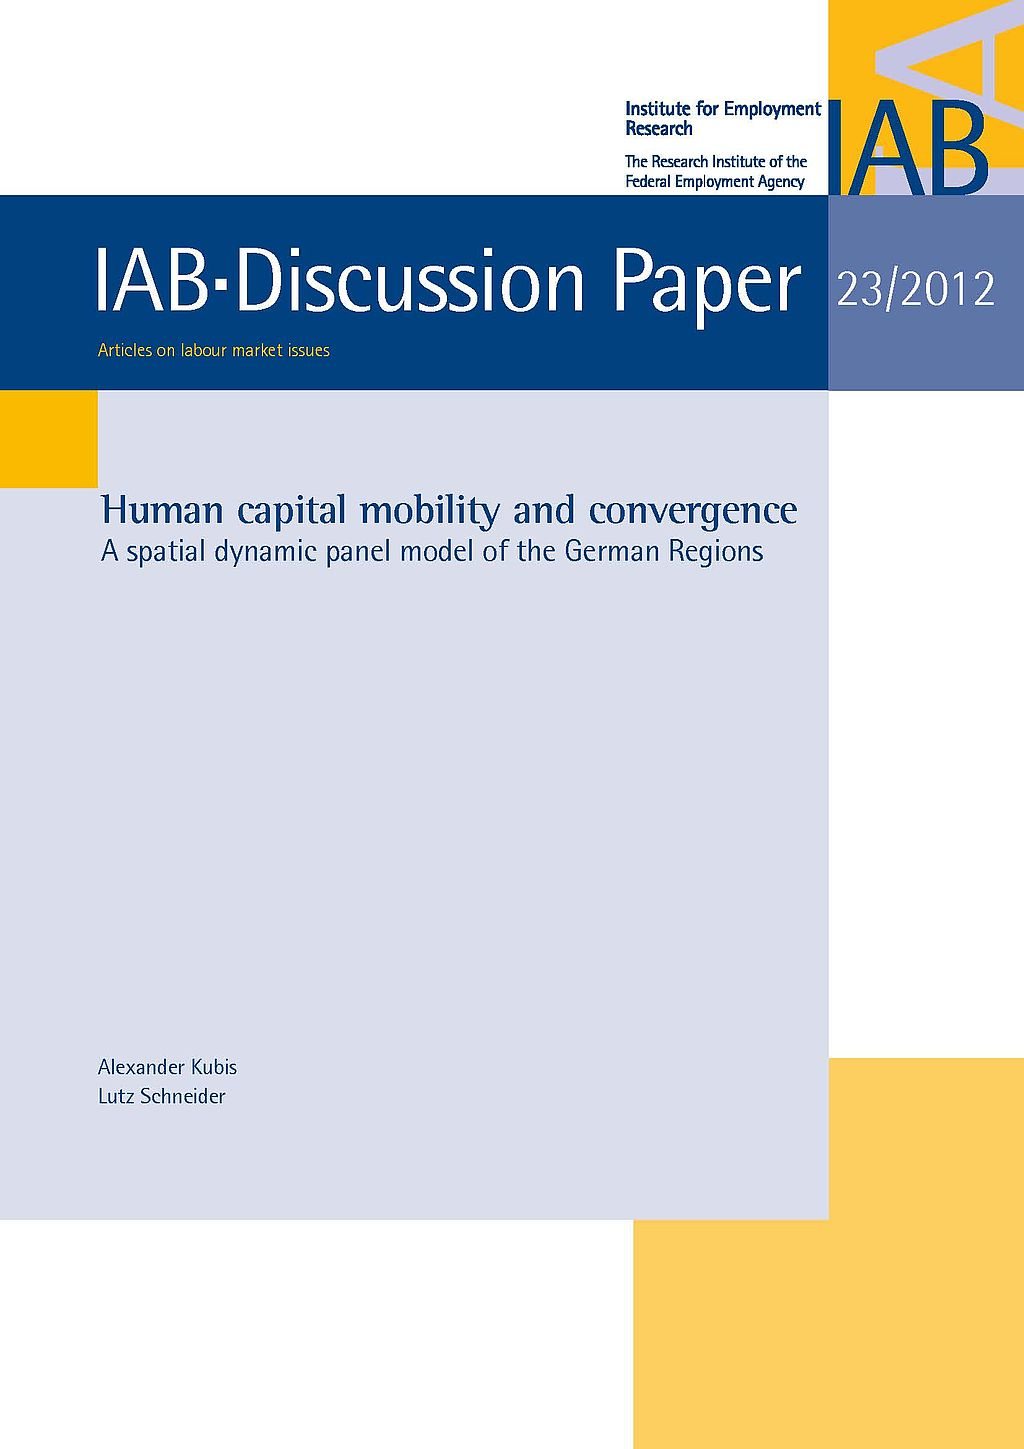 cover_IAB-Discussion-Paper_2012-23.jpg